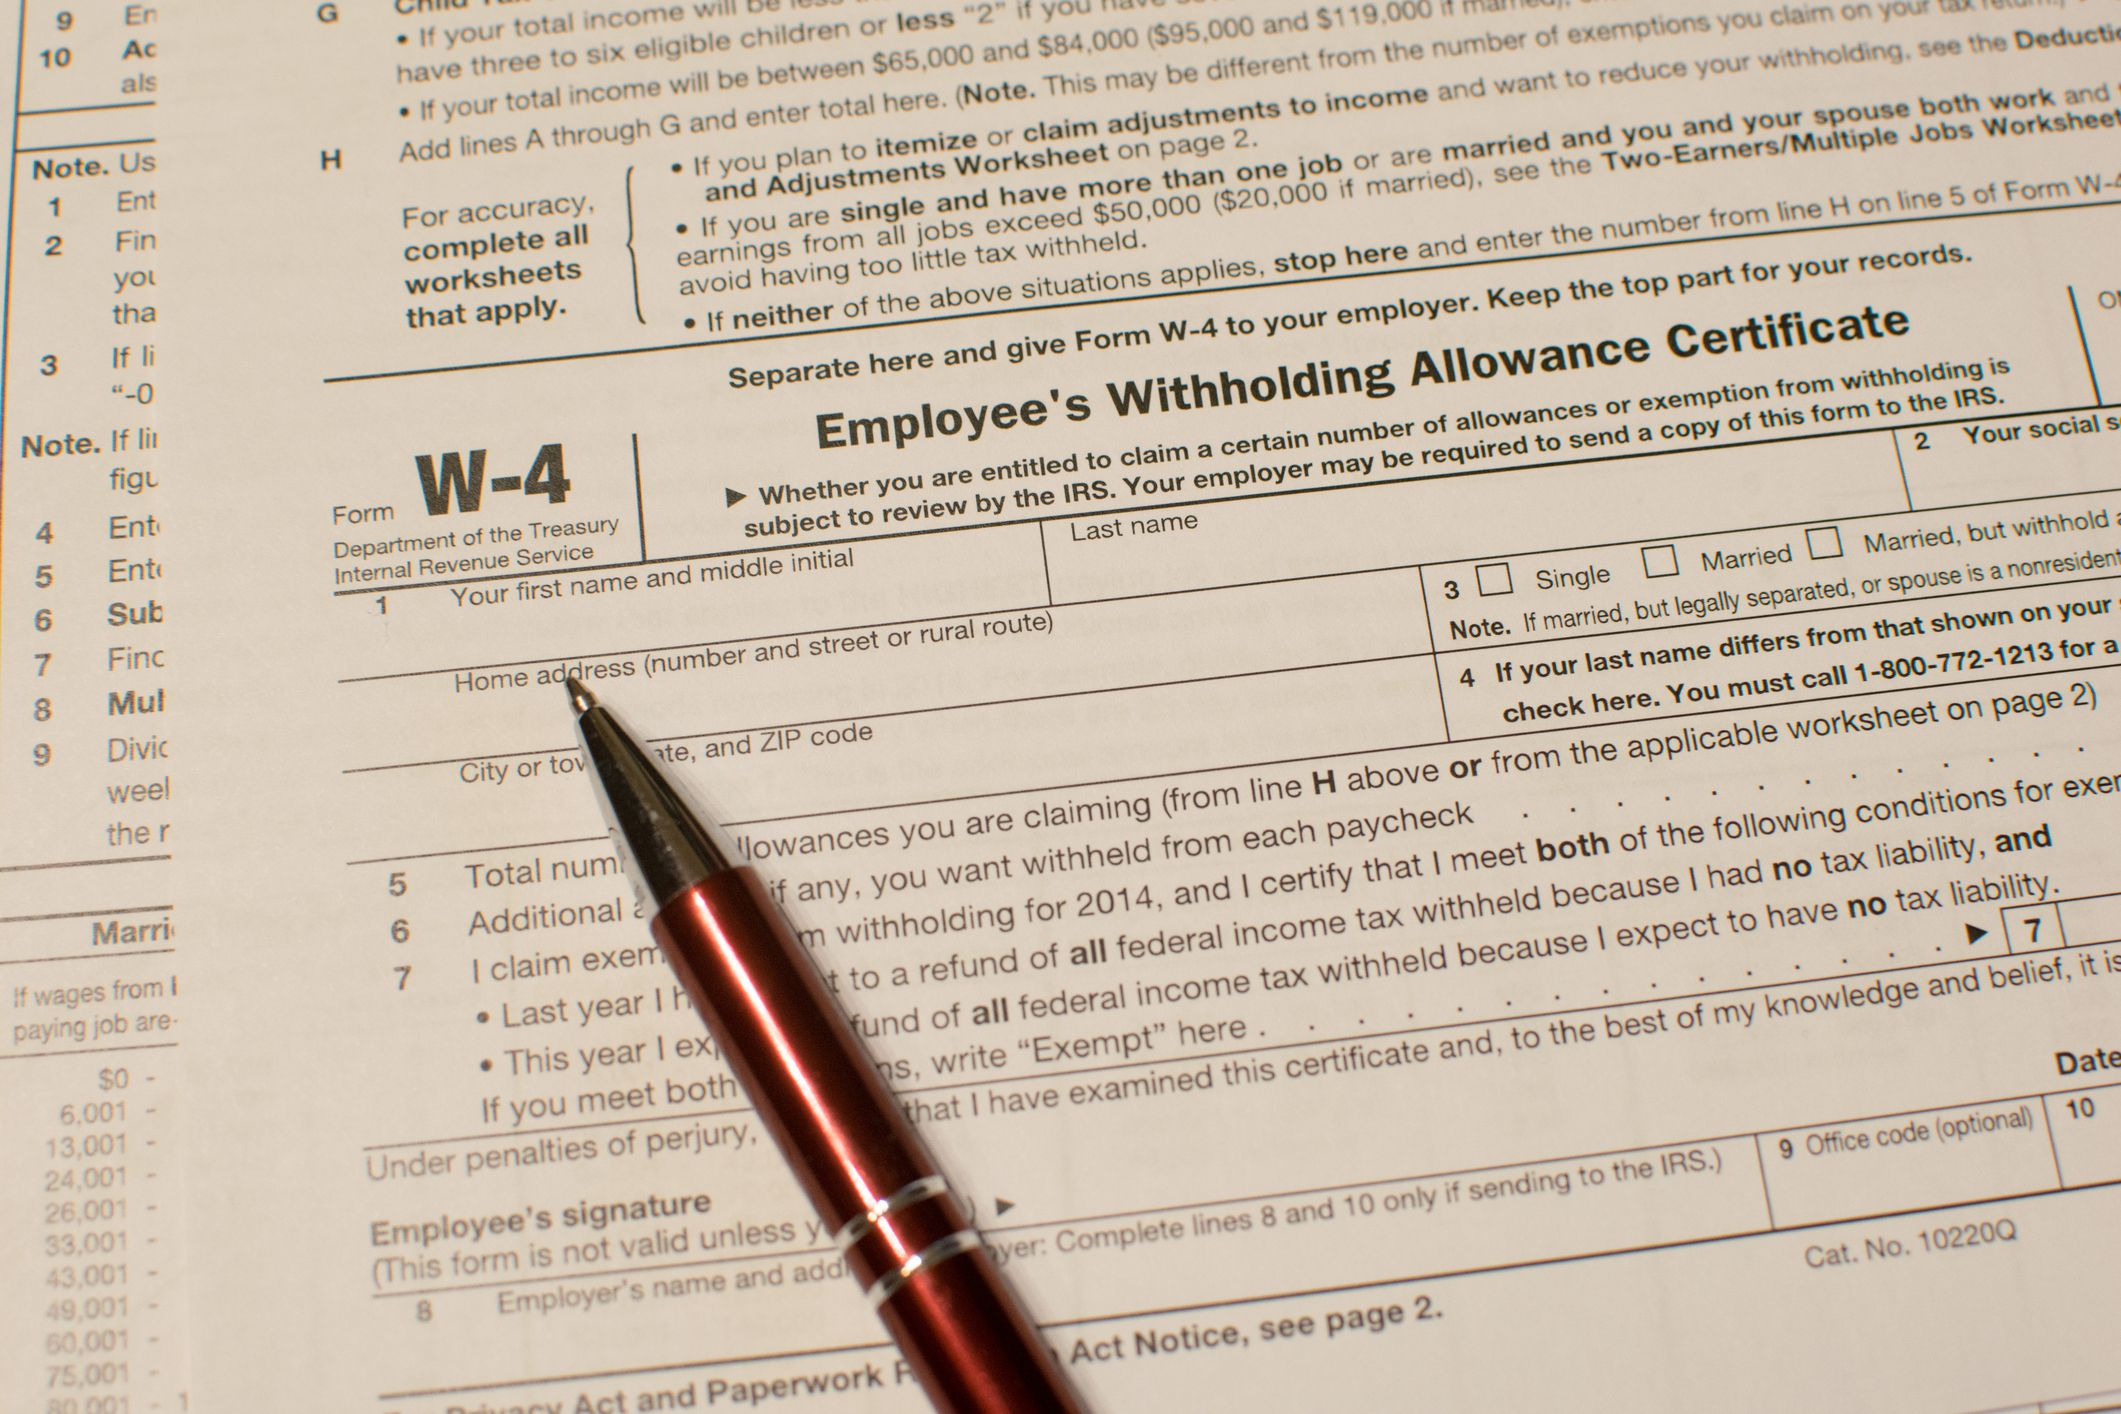 how do allowances affect tax withholding